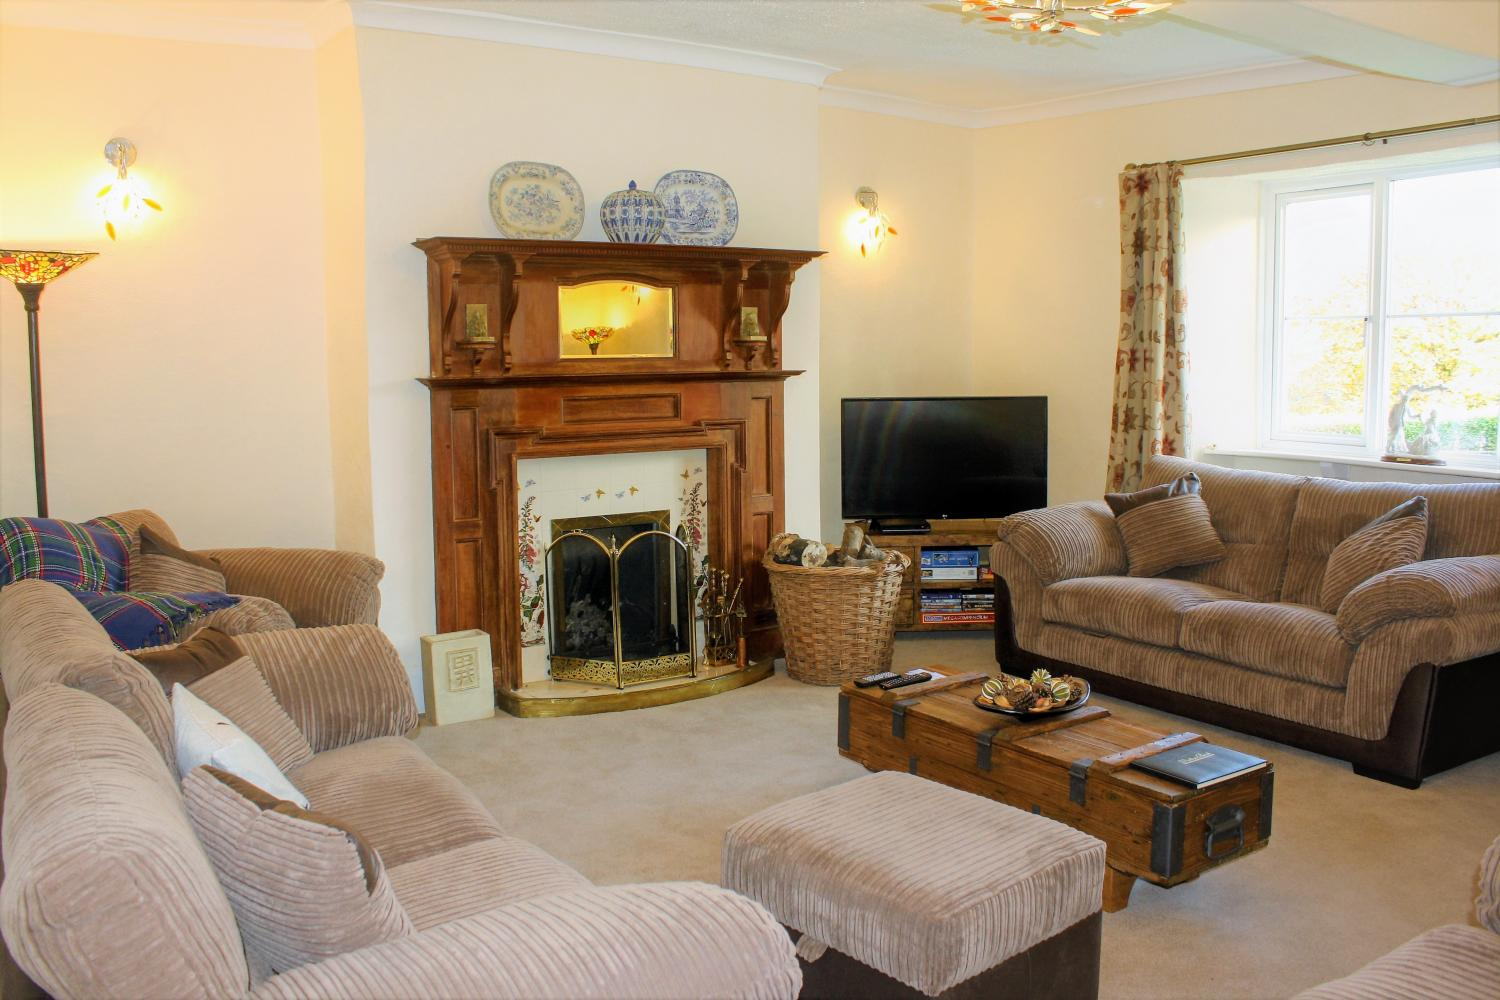 upcott farm house holiday group accommodation sitting room